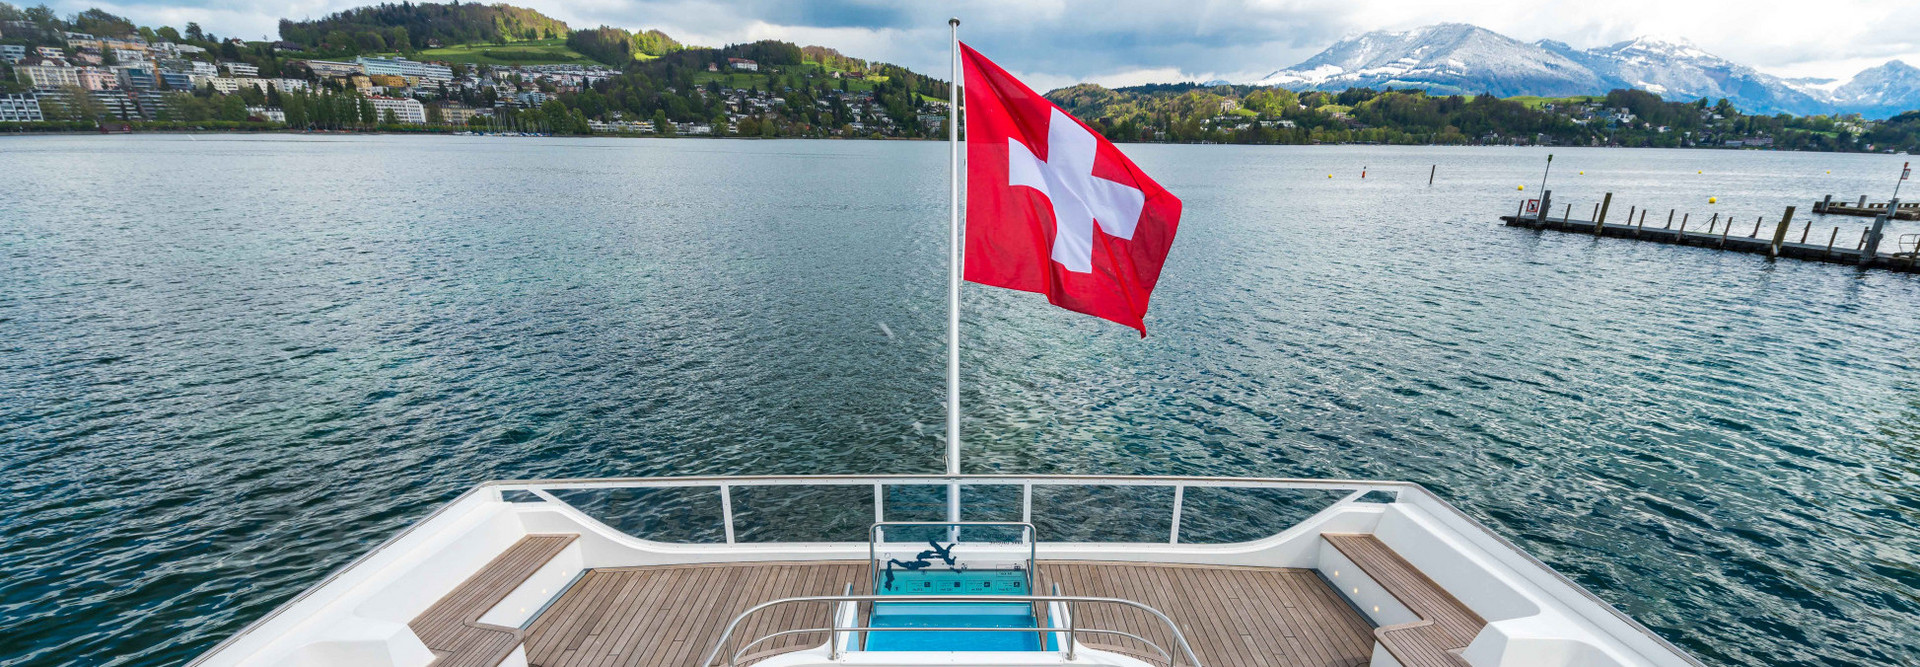 View from above on the stern of the motor ship Diamant. The Swiss flag is blowing in the wind, the sky is slightly cloudy.